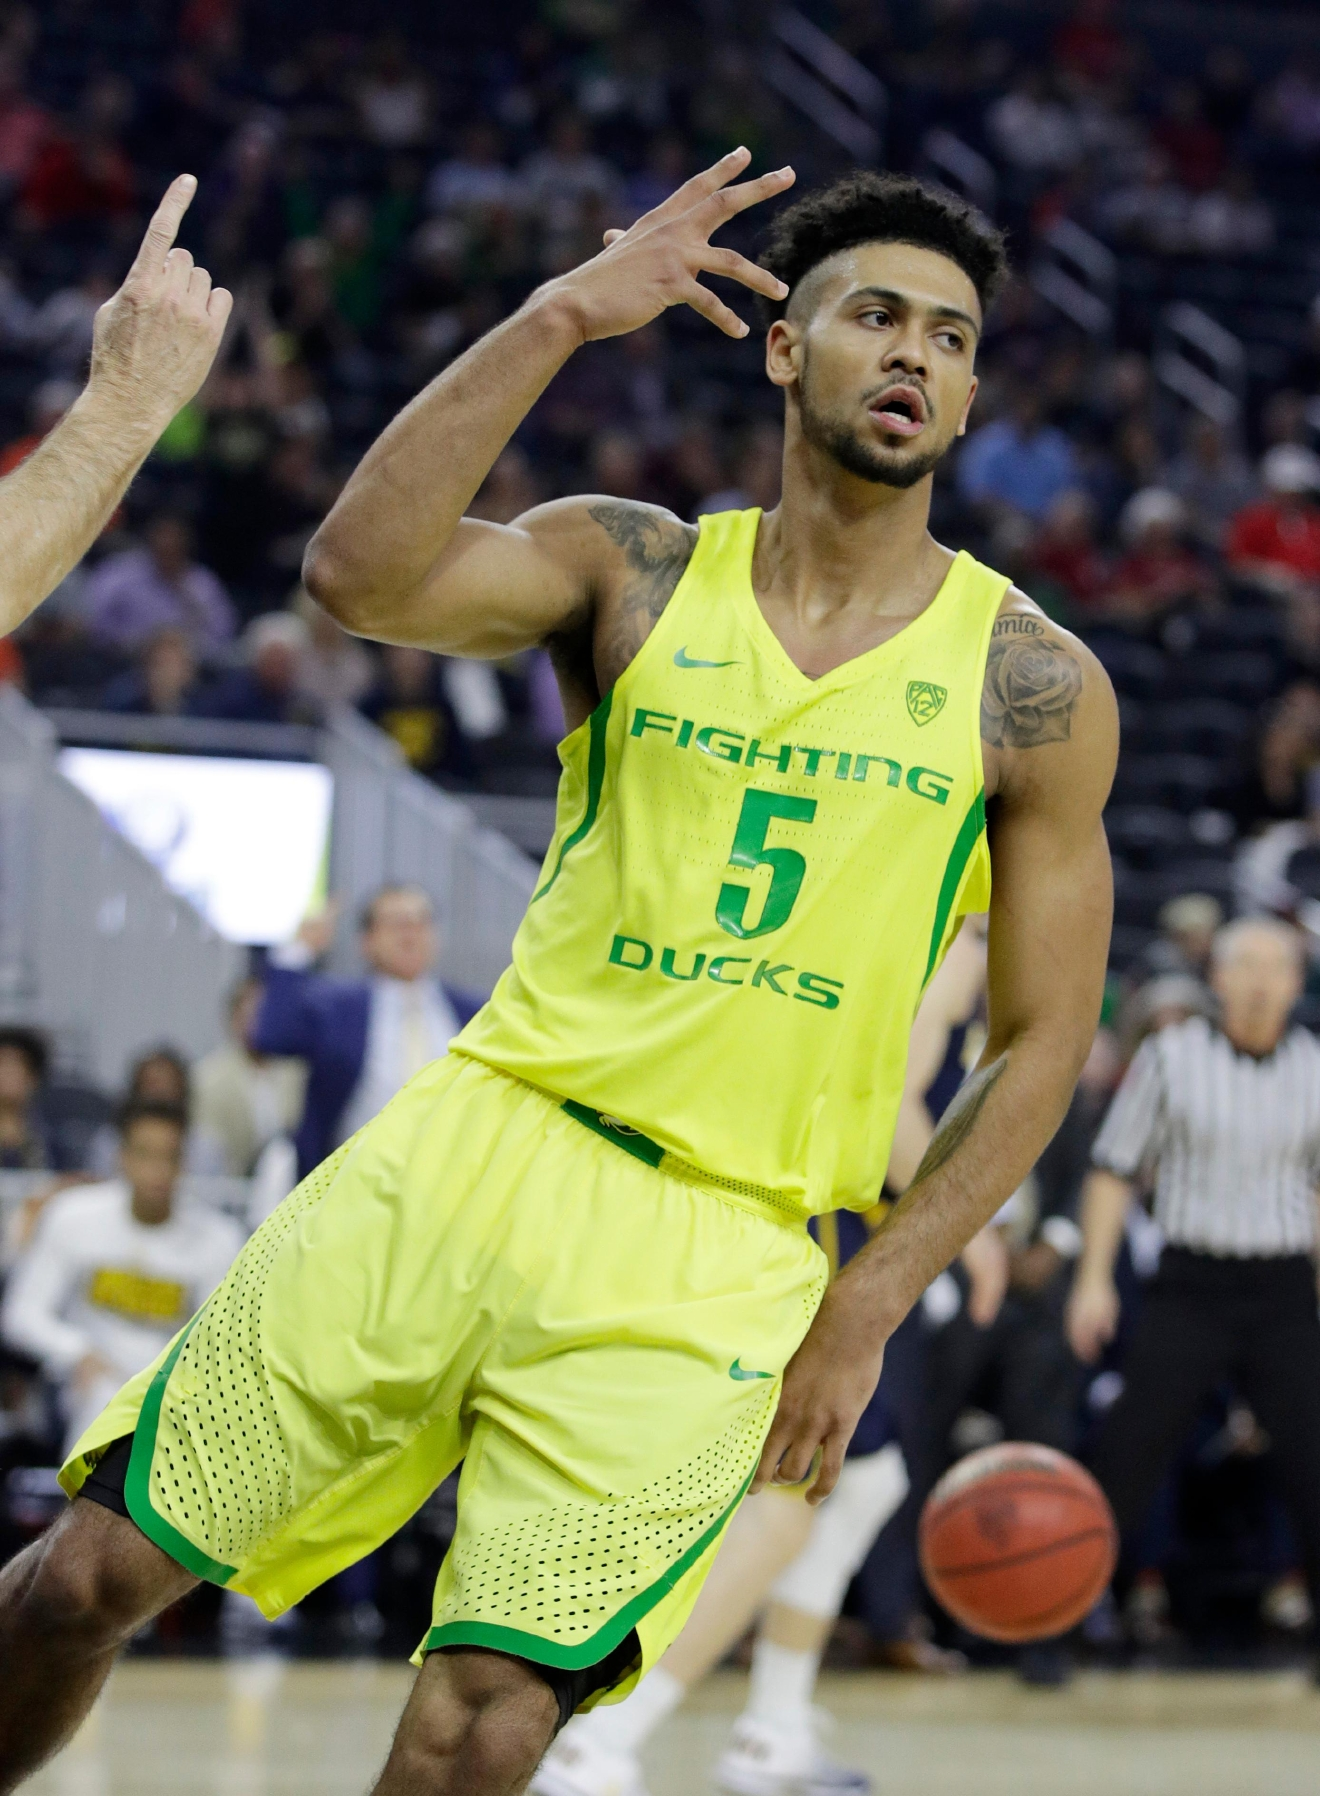 Oregon's Tyler Dorsey reacts after scoring against California during the first half of an NCAA college basketball game in the semifinals of the Pac-12 tournament Friday, March 10, 2017, in Las Vegas. (AP Photo/John Locher)